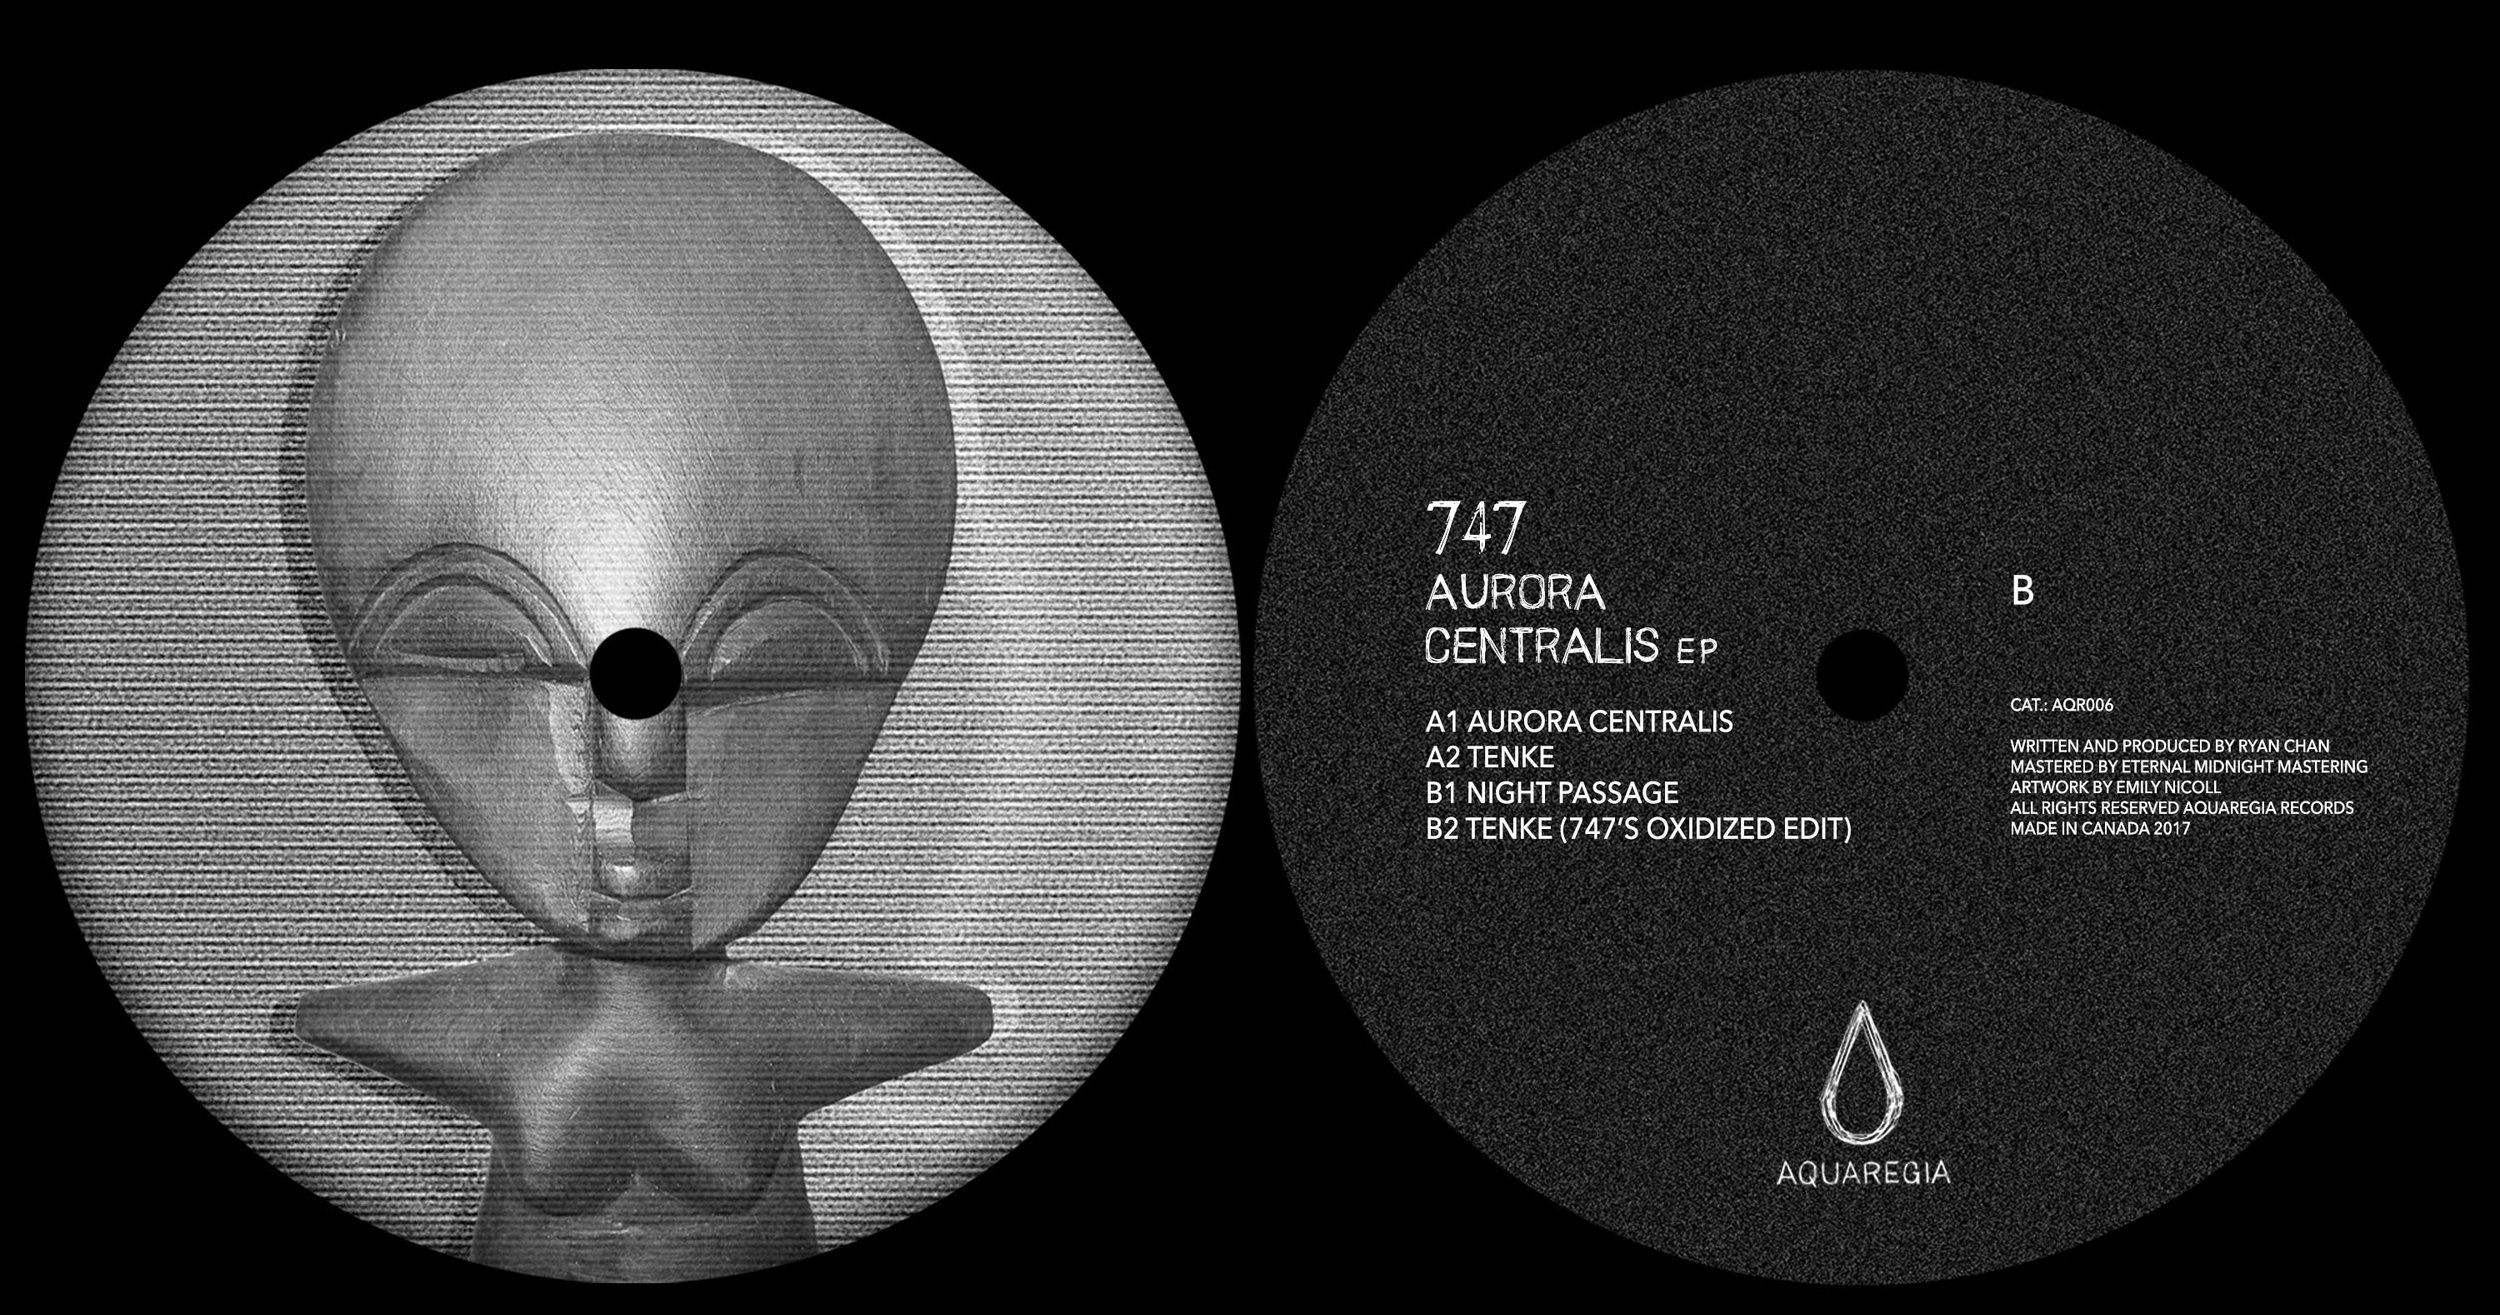 The Aurora Centralis EP vinyl from 747 is available soon in the Aquaregia webshop.